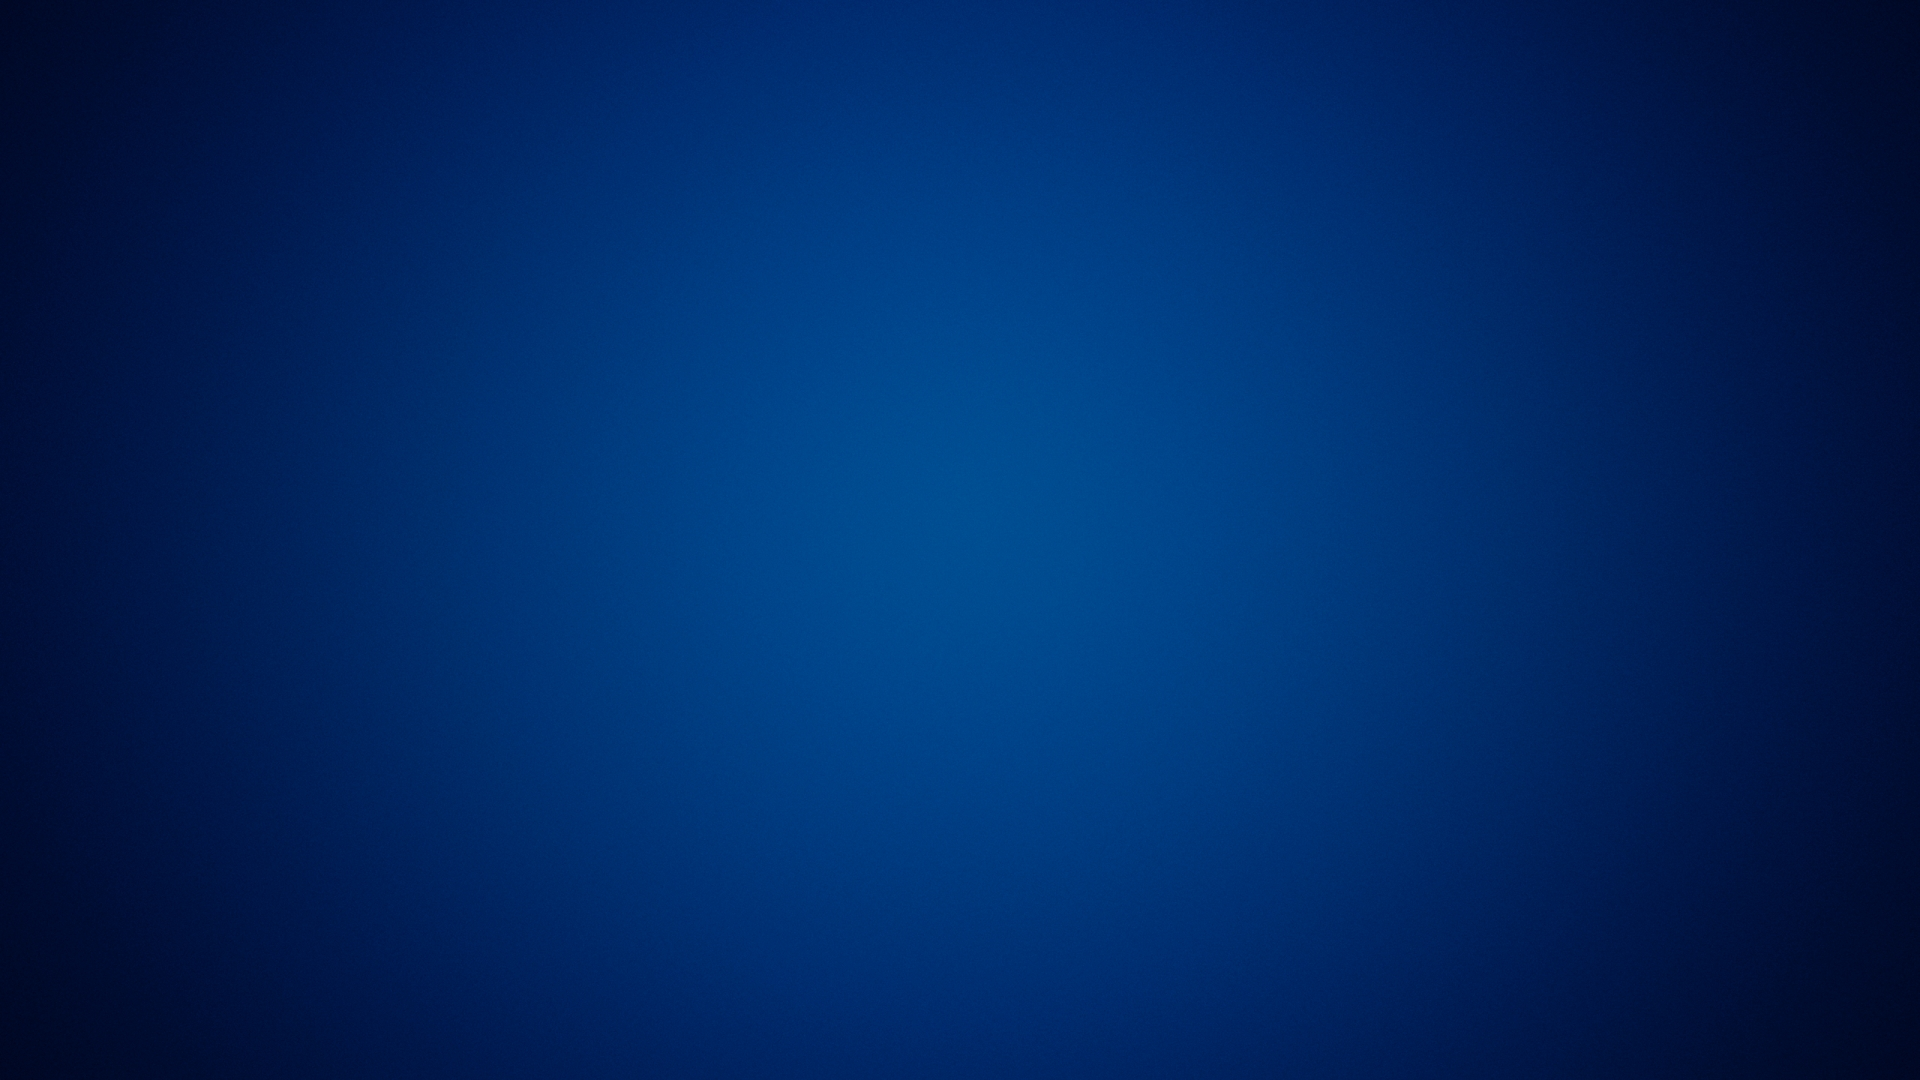 Blue HD Wallpapers 1080p